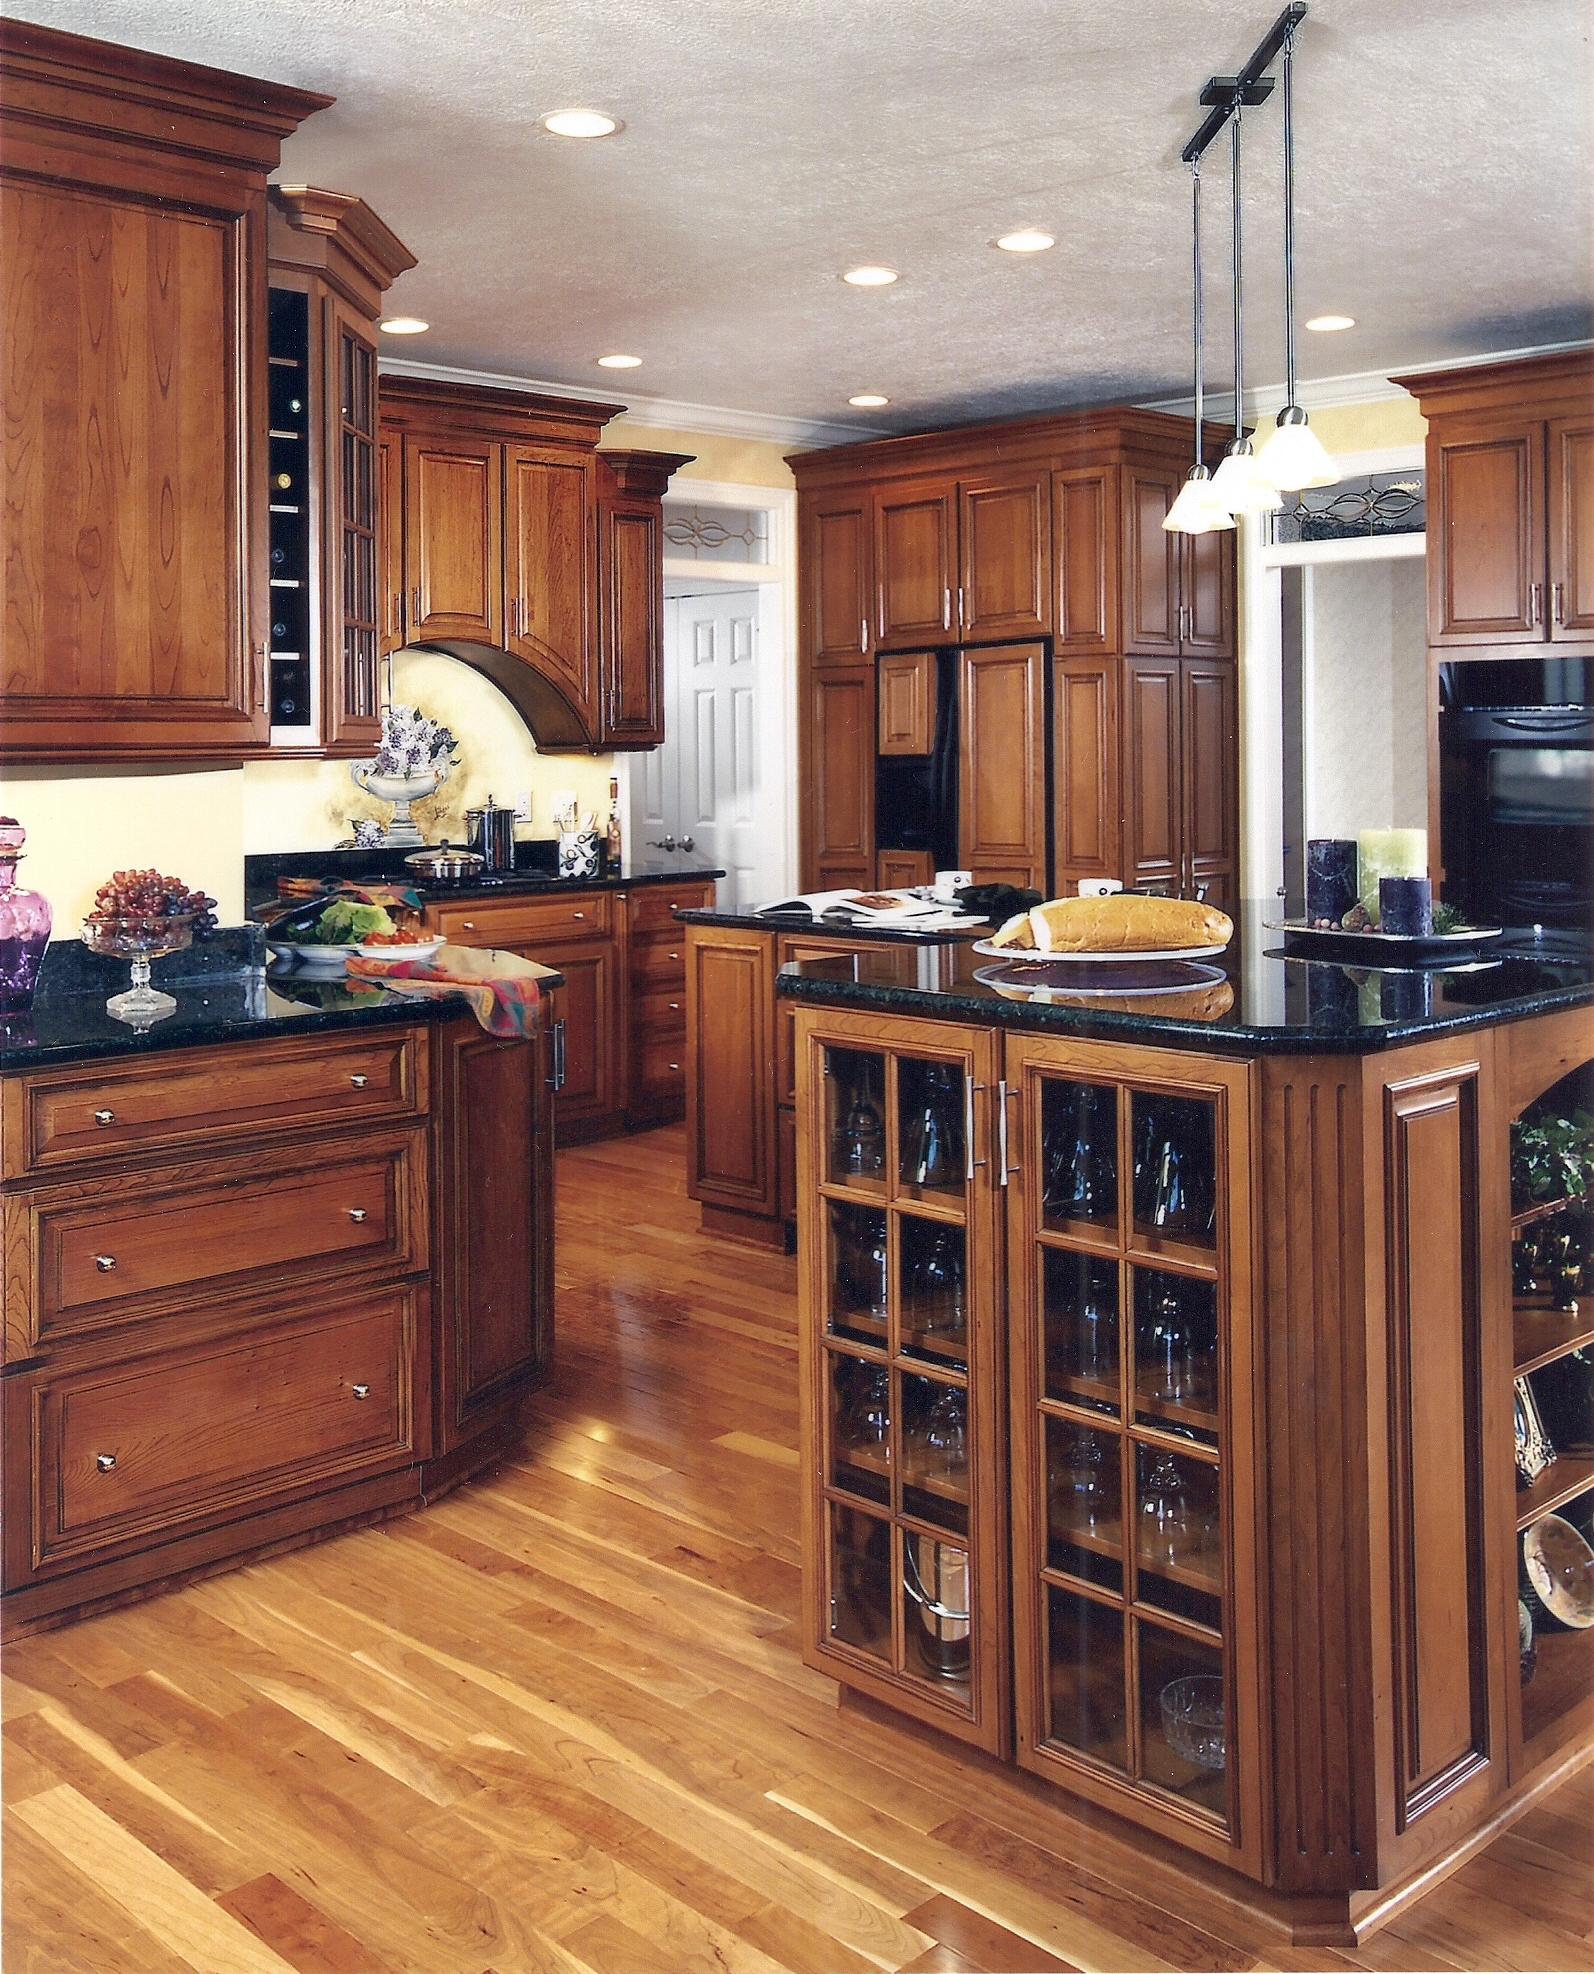 follow the remodeling specialist on